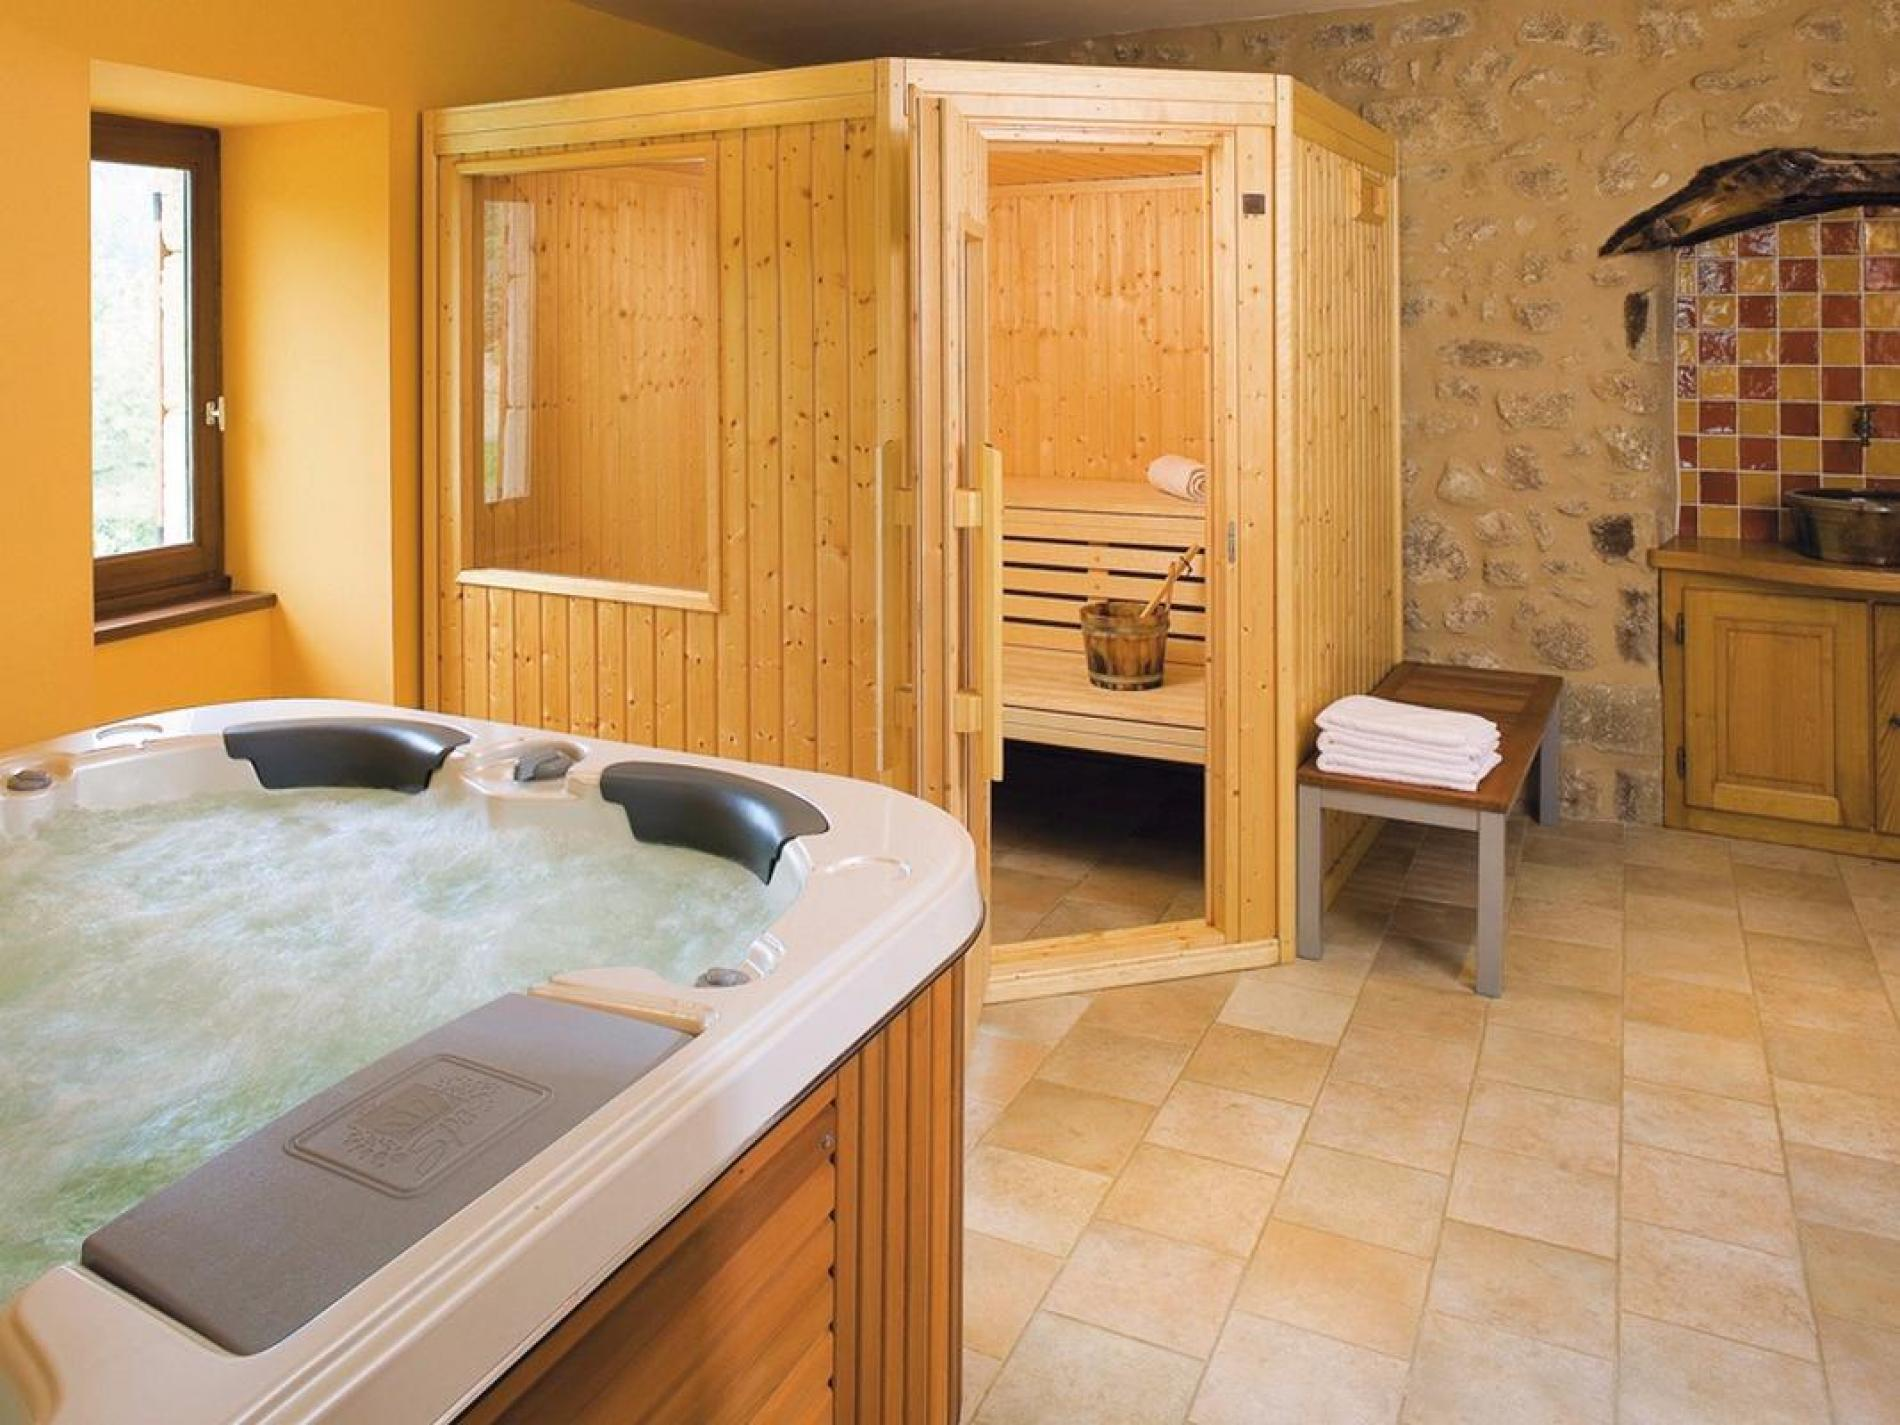 Spa (steam room, jacuzzi, fitness room)